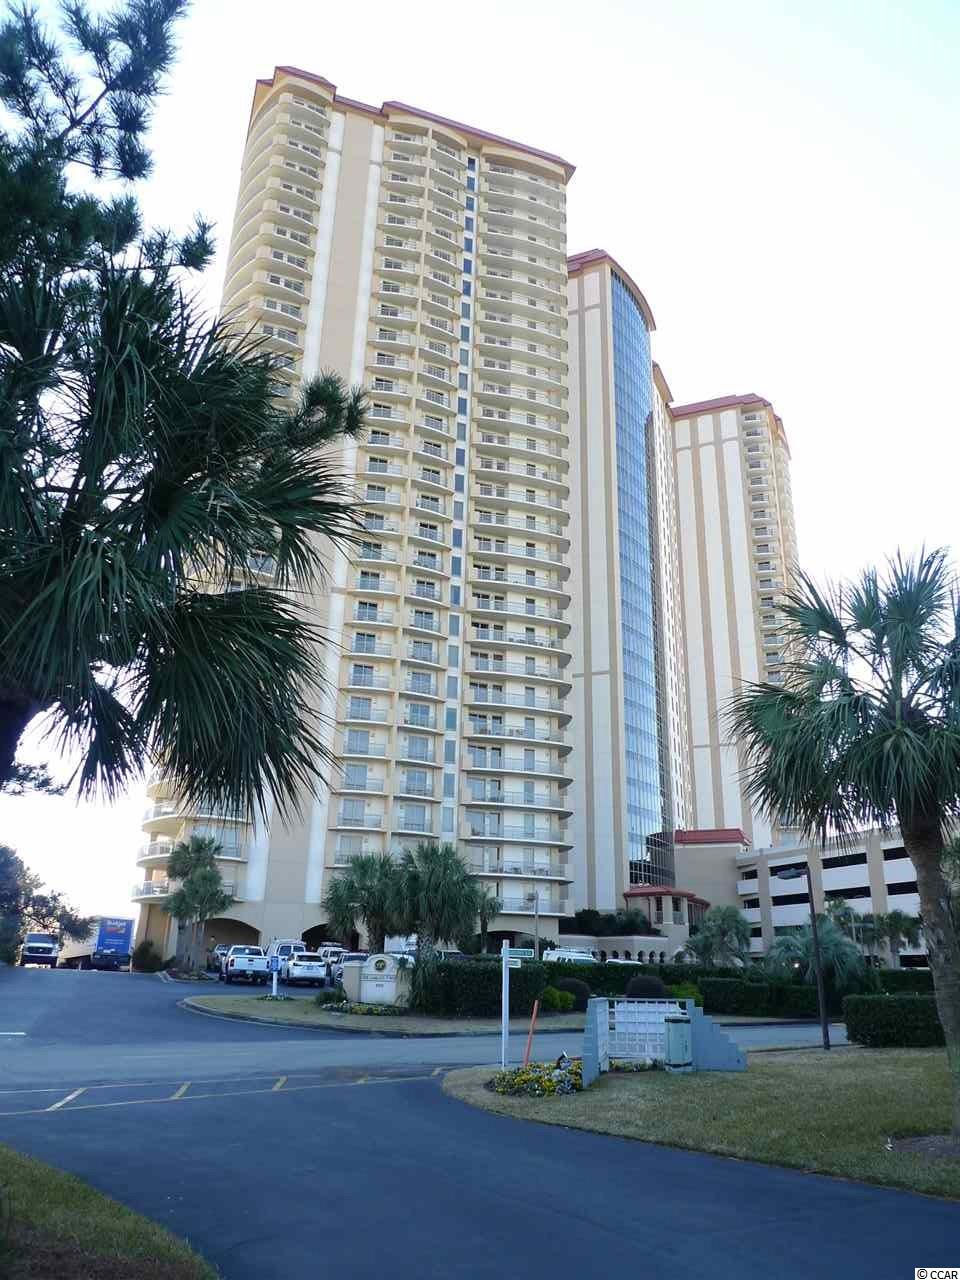 This Beautifully Furnished unit is located above the Lobby. Has 4BR/3BA and over 2600 Heated Square Feet with 3 Large Balconies totaling 3000 SF Under Roof . New LV Plank Flooring Installed in the Living Room. Currently On Kingston Plantation Rental Program. Great Open Floor Plan With Large Living Room Dining Room Combination. Kitchen With SS appliances and Breakfast Bar which Leads To Large Laundry Room.  The Rooms and Walk-In Closets are Generously Sized. This unit would make a wonderful Primary Home, Second Home or Investment Property. Enjoy all the amenities Kingston Plantation Offers: Multiple Outdoor Pools, Indoor Community Pool,  Spa and Fitness Center, Pickleball, Tennis, Badminton, Croquet, Volleyball. Enjoy Long Walks on the Beach or Swim in the Beautiful Atlantic Ocean.